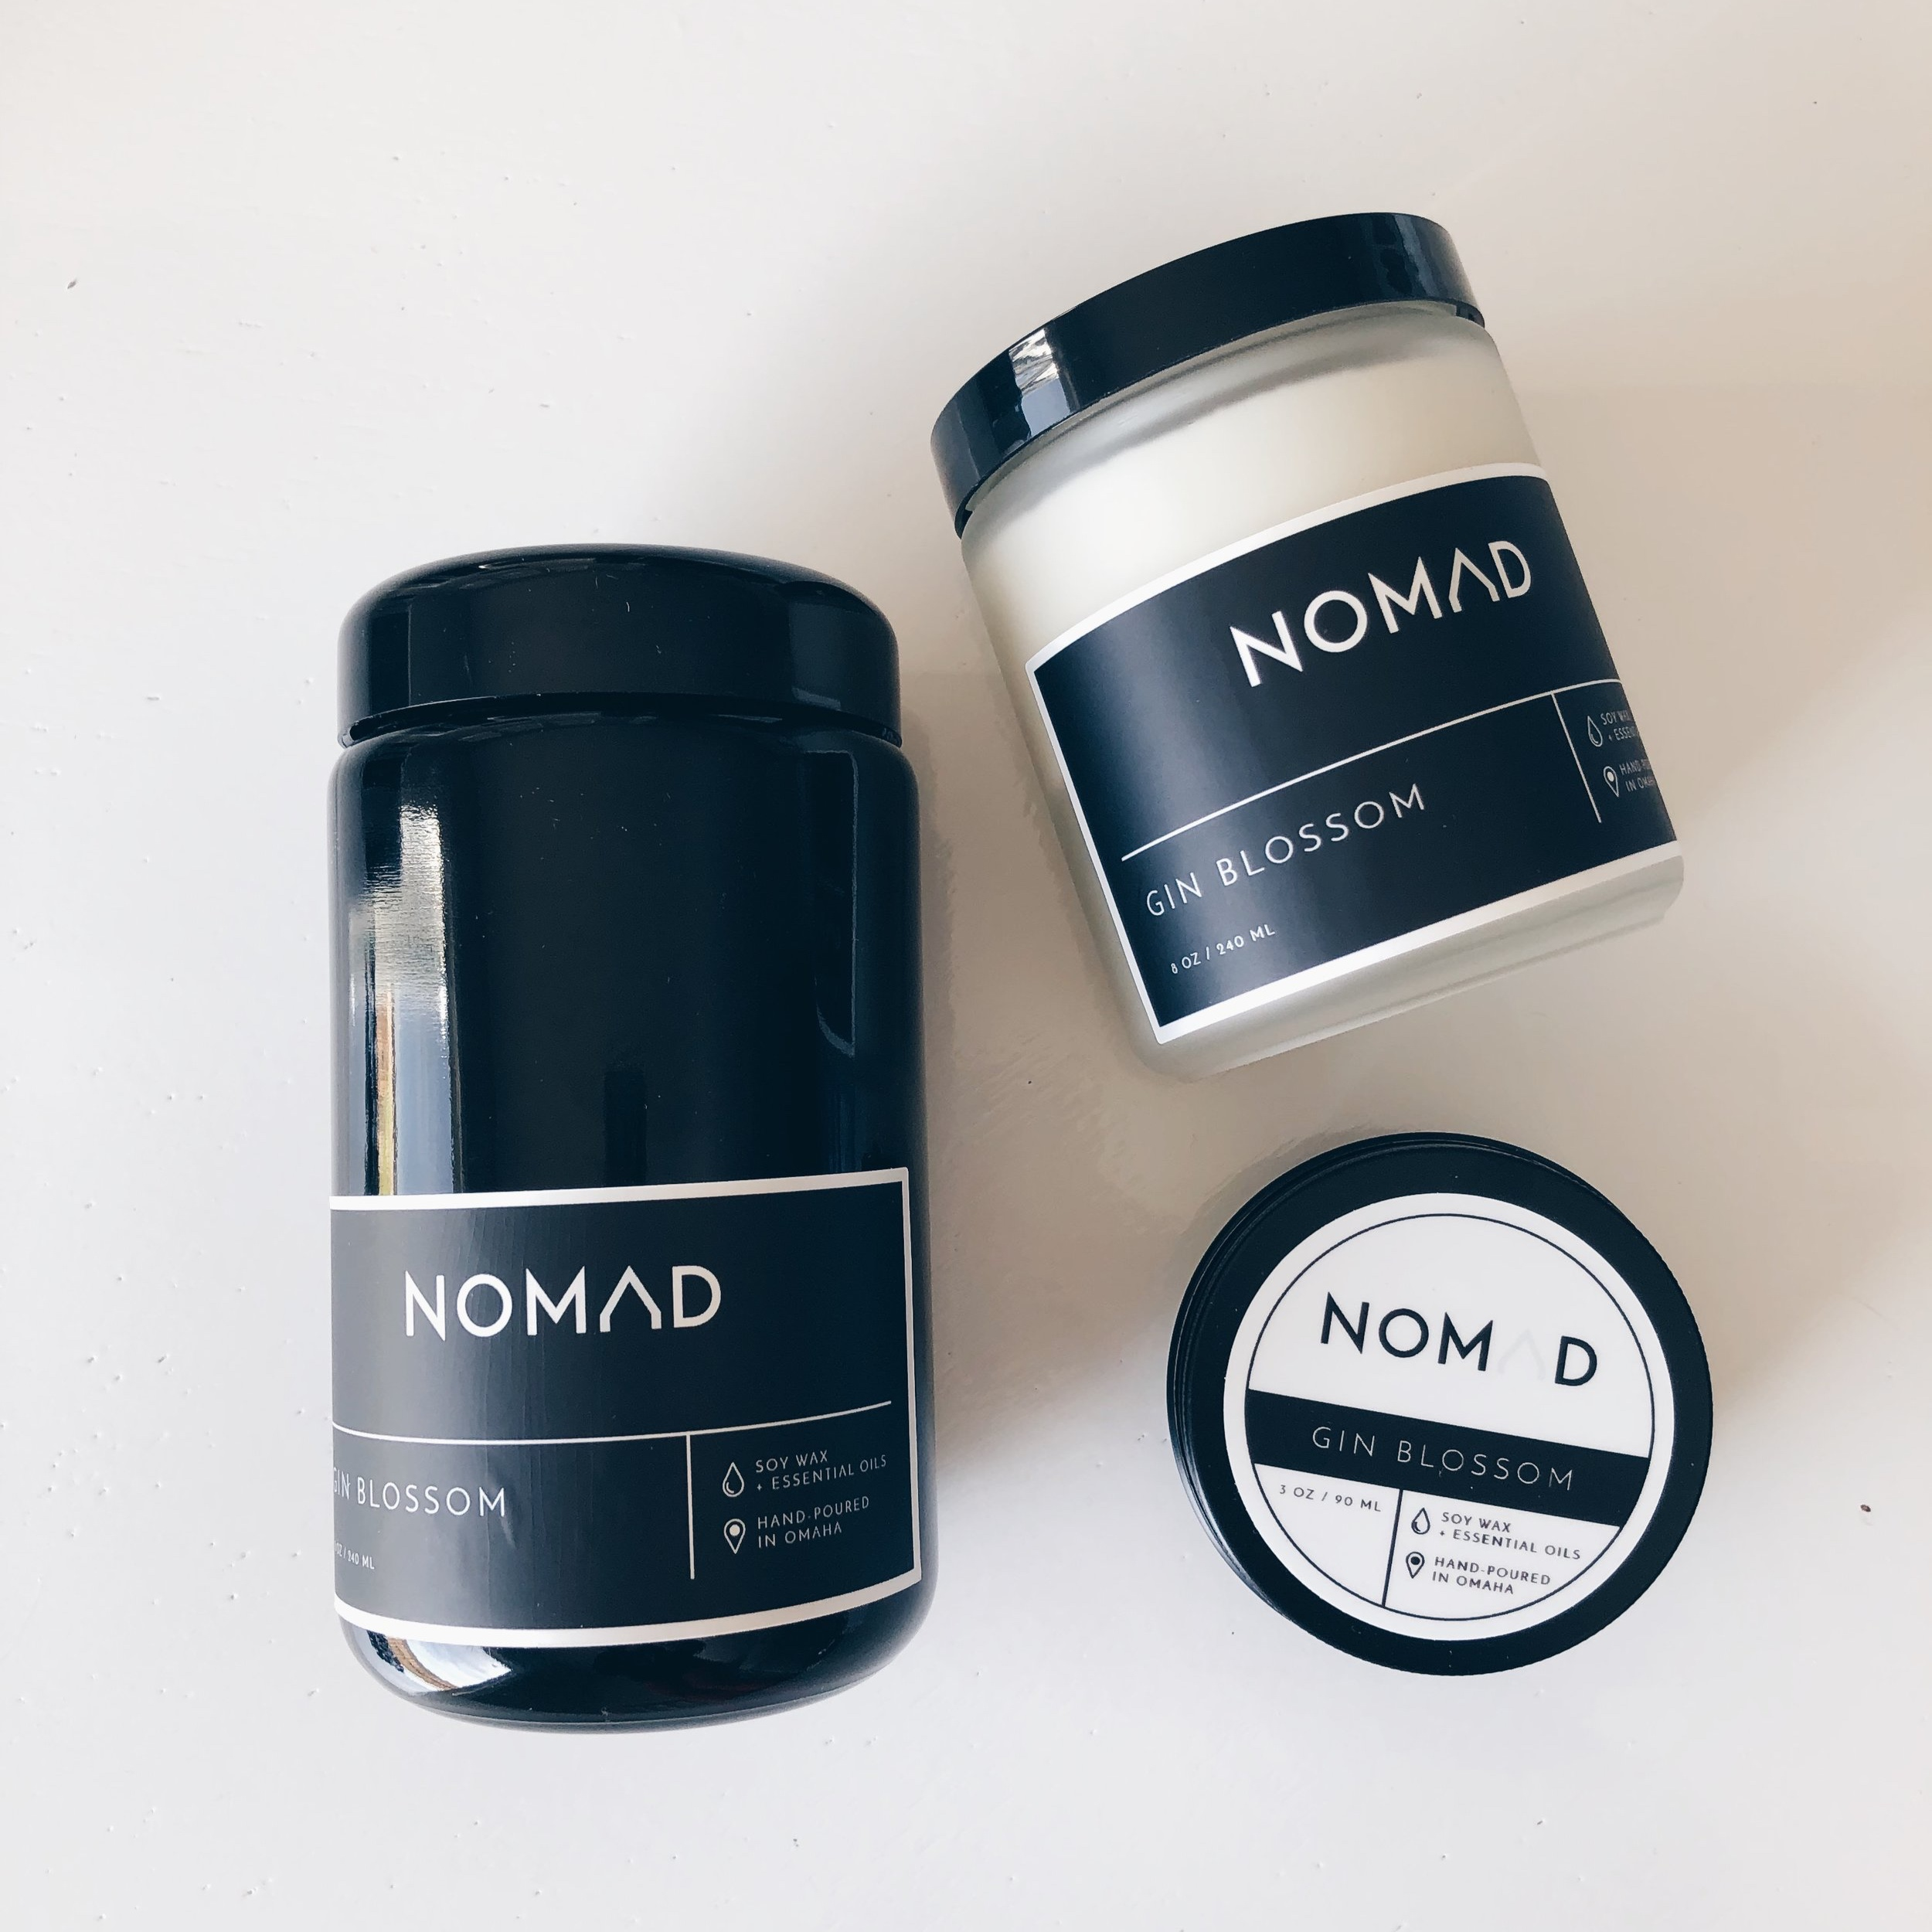 Nomad Wax modern candles 3 sizes.jpg